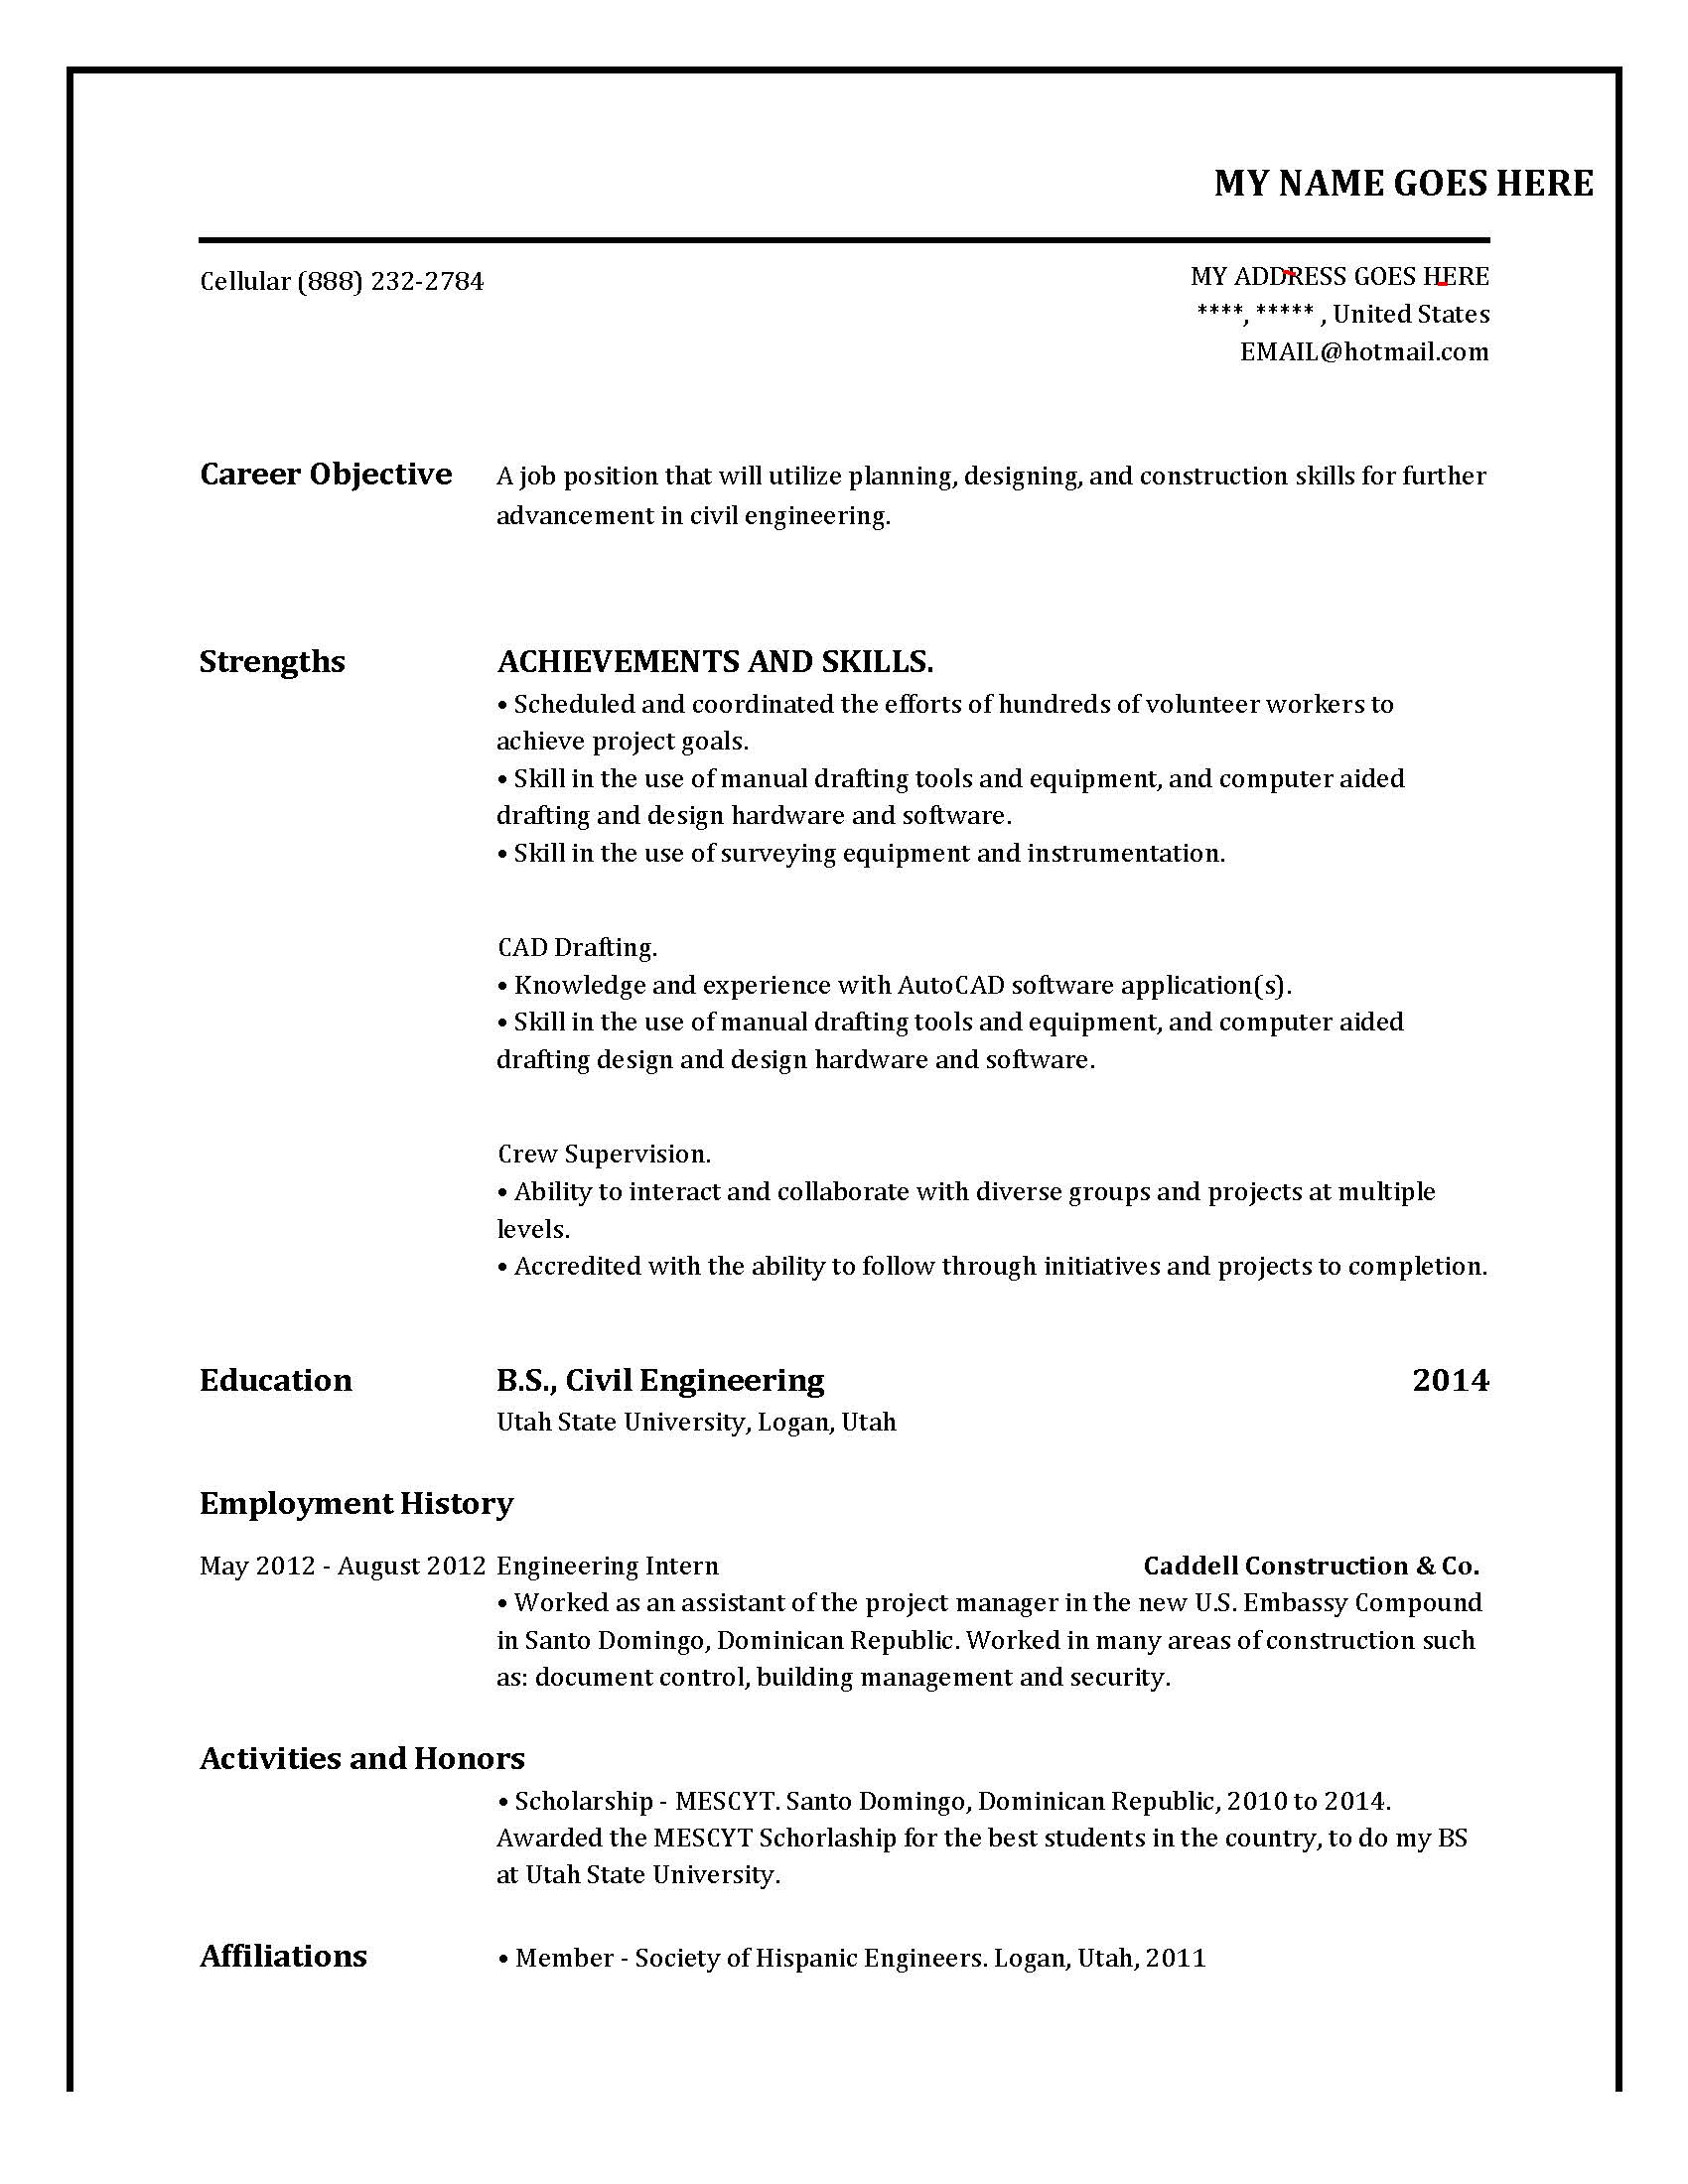 Help Build My Resume  Resume Builder Help